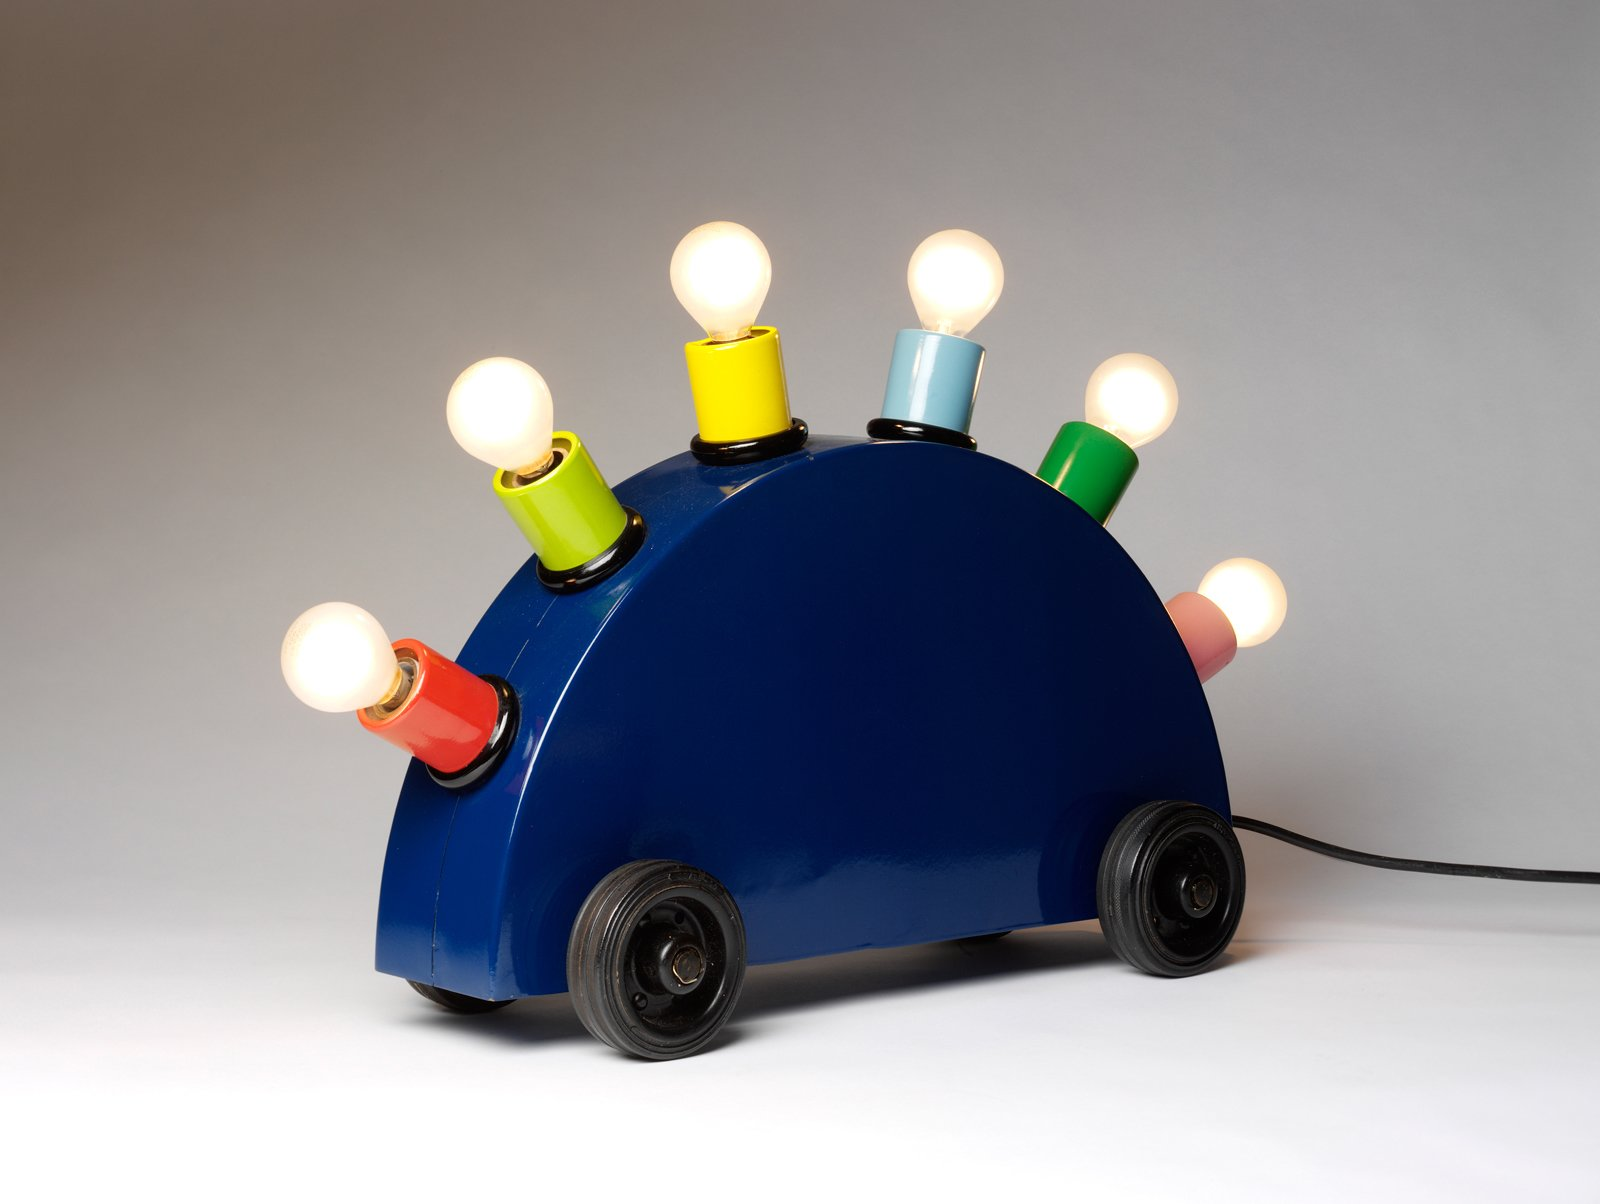 """""""Super Lamp"""" Martine Bedin. © V&A Images. Painted metal, lighting components.  Photo 1 of 12 in """"Postmodernism"""" at the V&A Museum"""